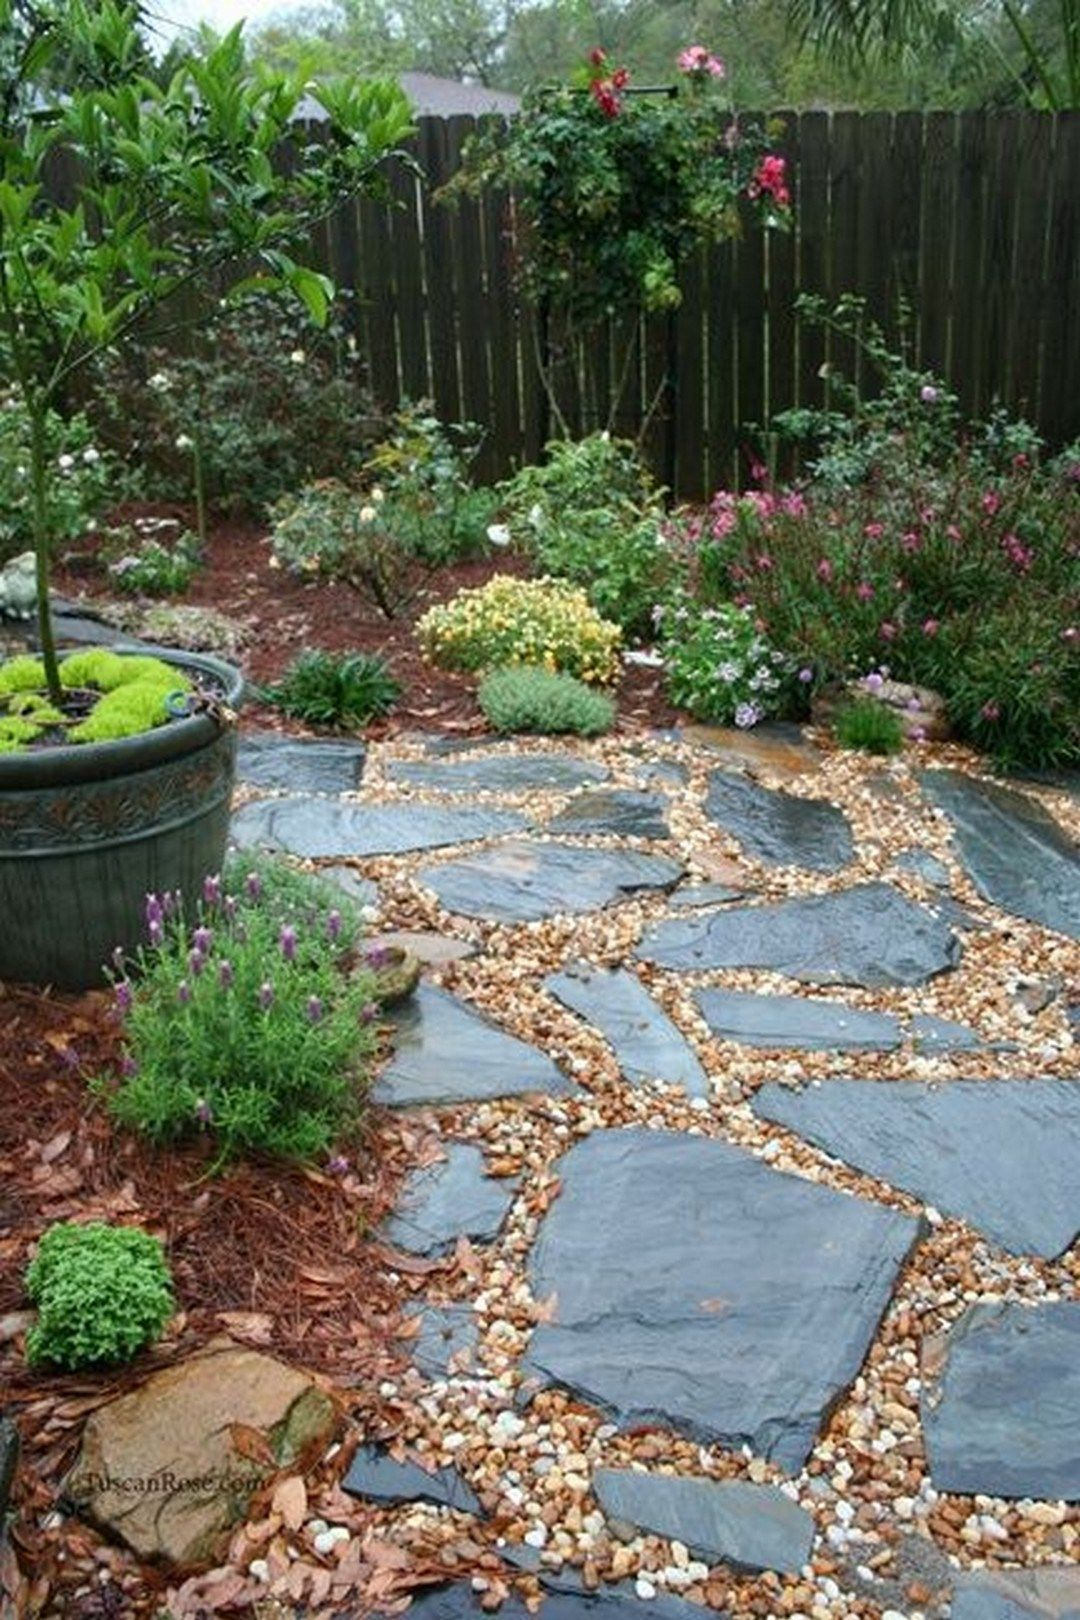 52 Amazing DIY Slate Patio Design and Ideas | Porches and